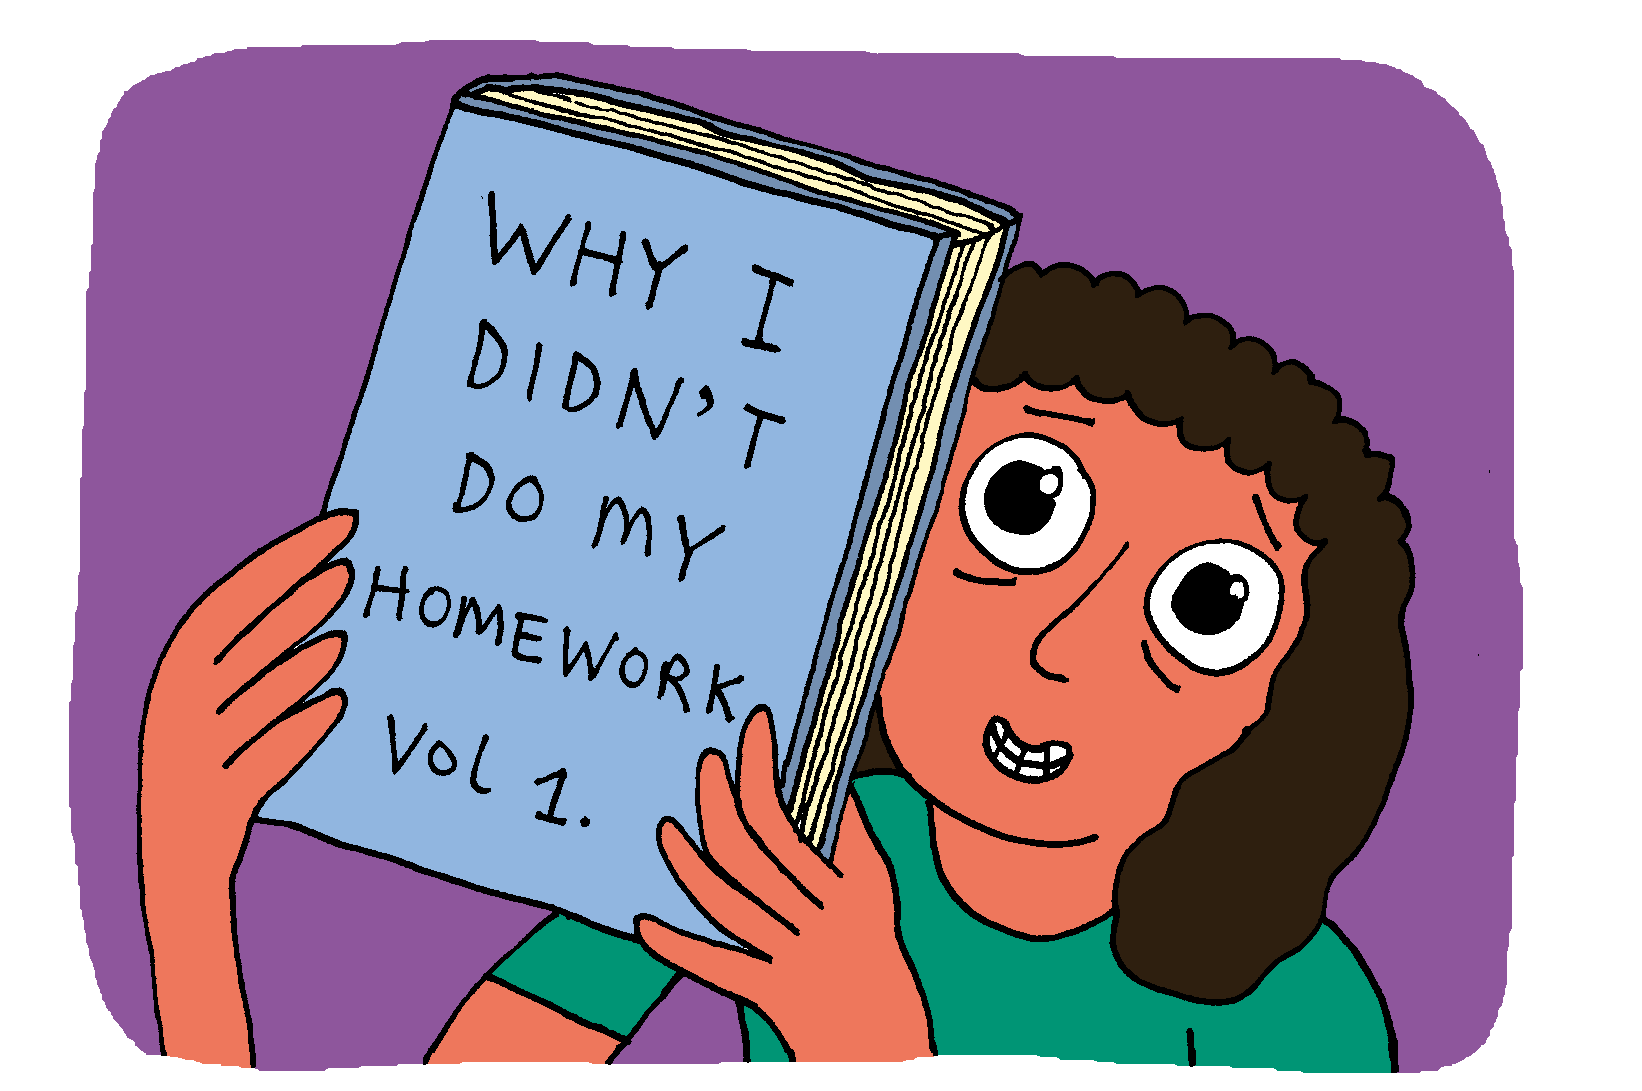 Homework excuses that work